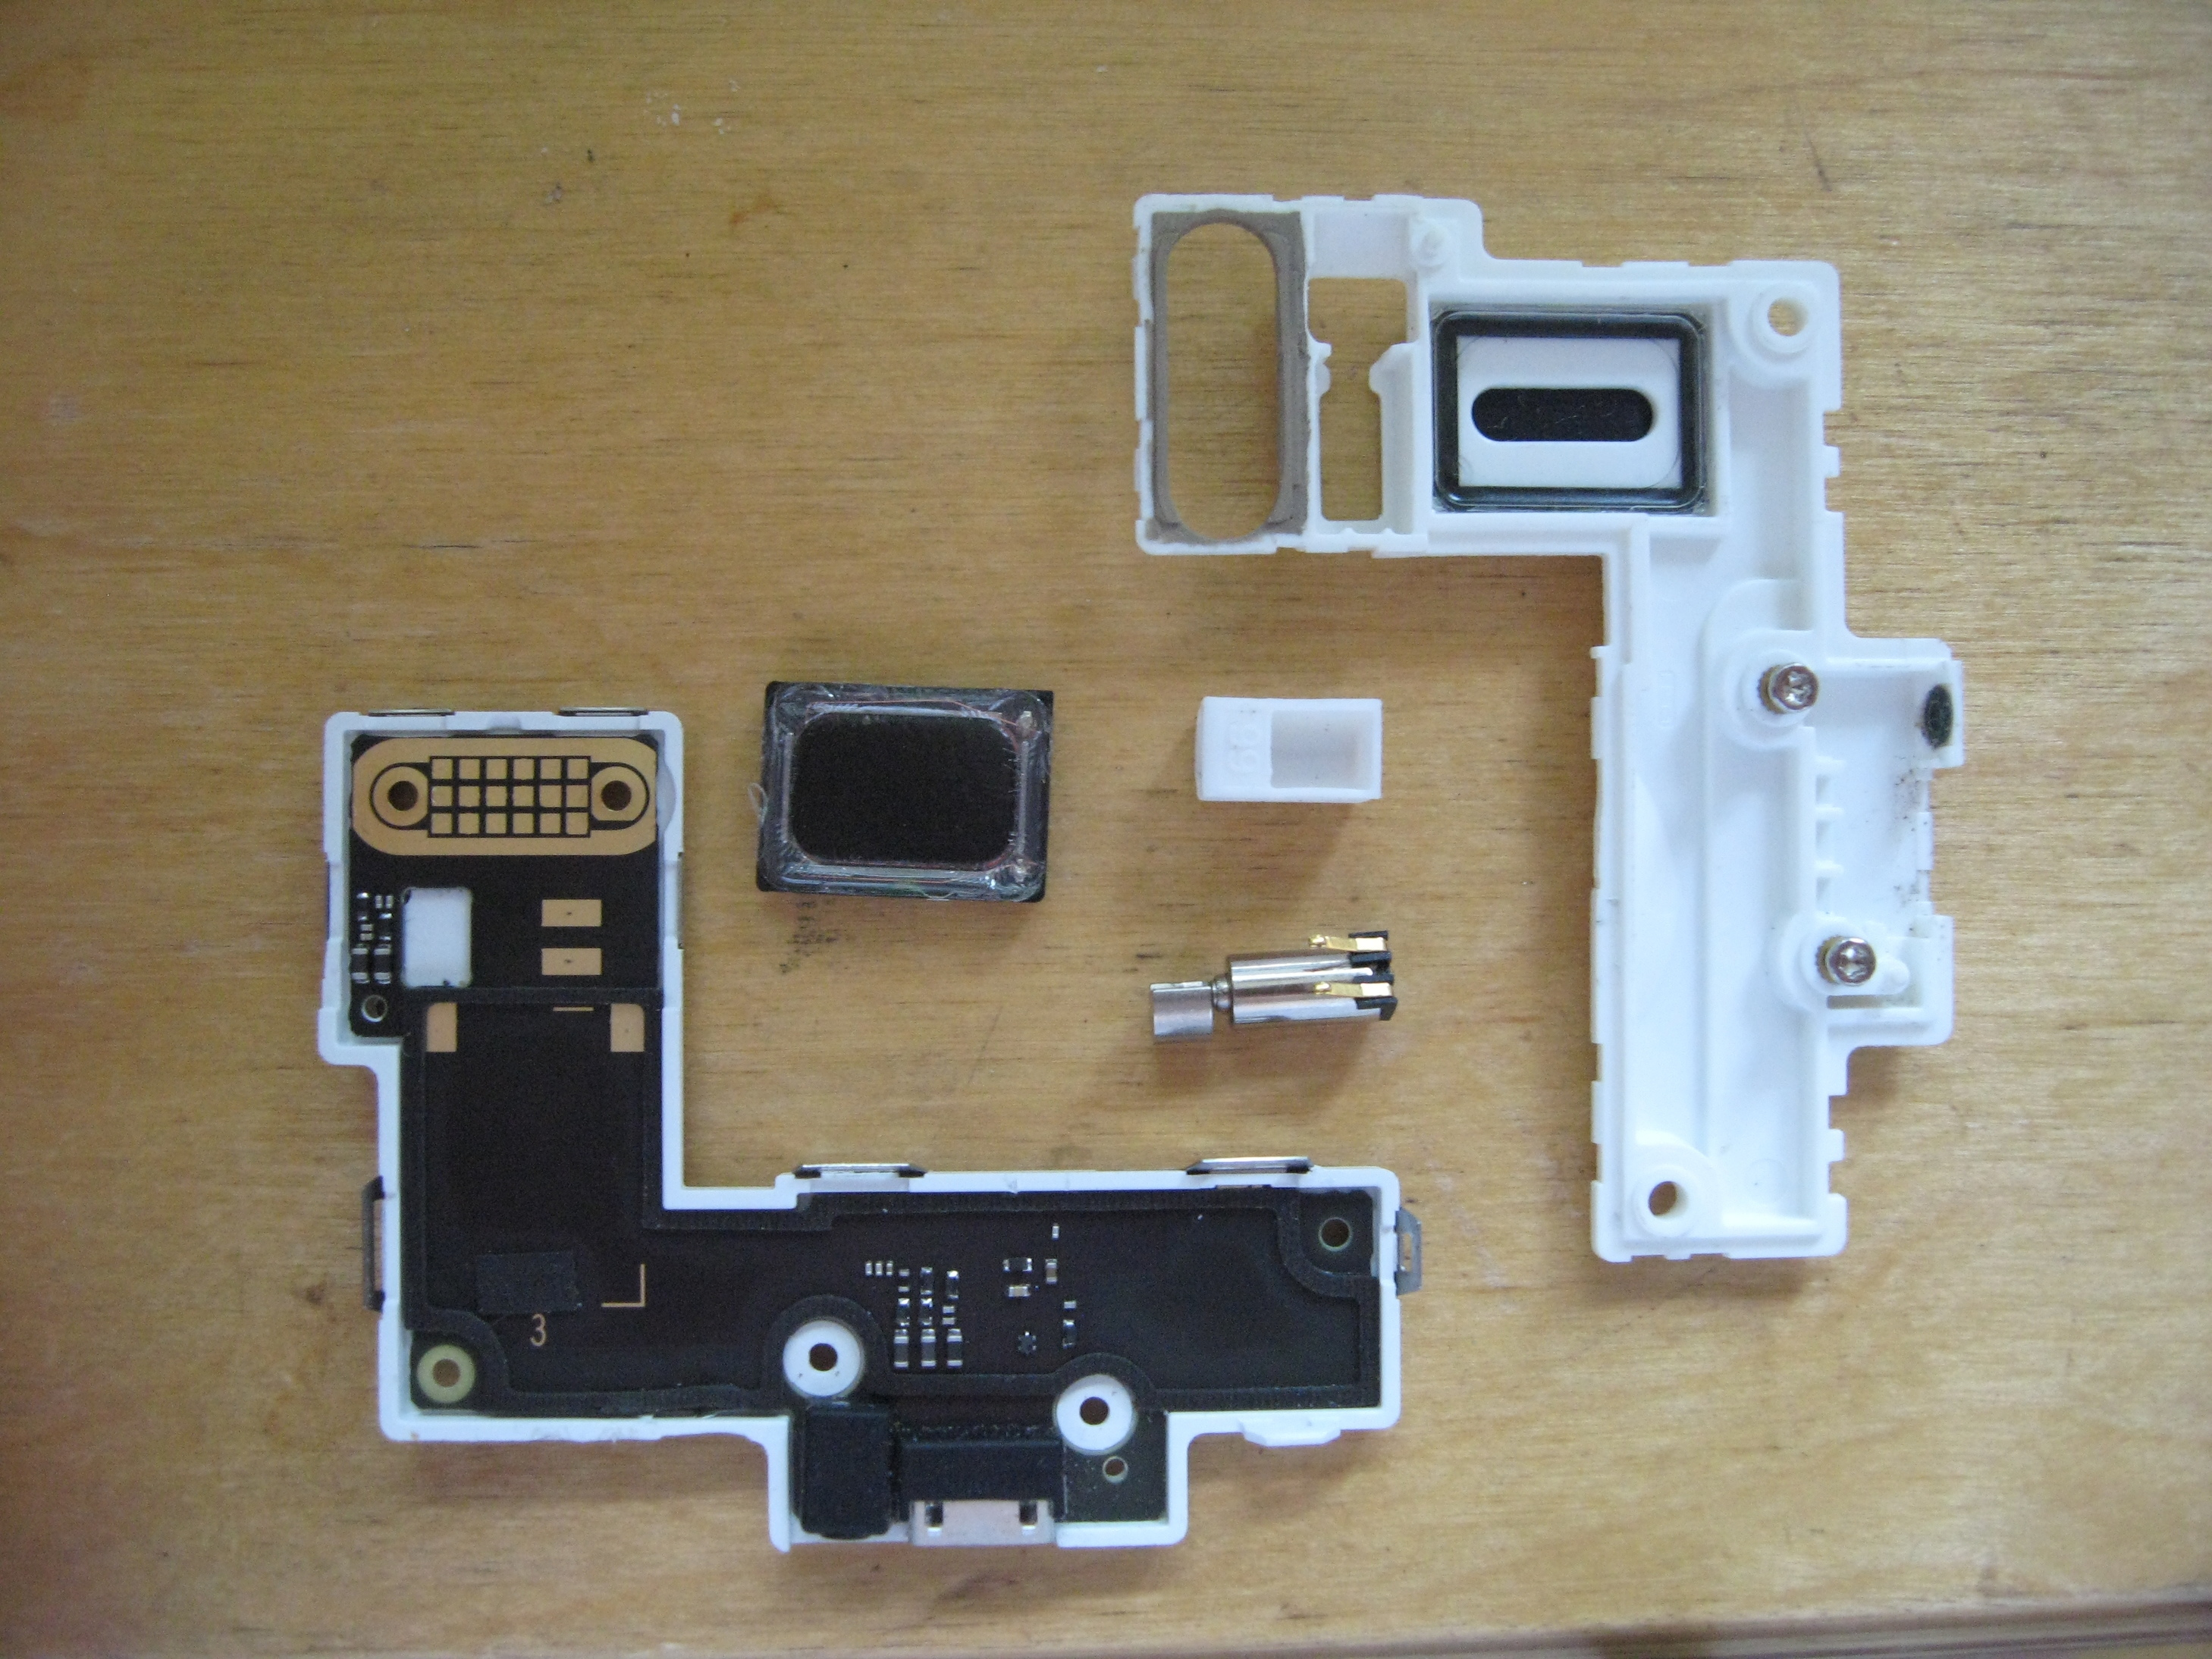 FP2: MicroSIM adapter broke SIM card slot pin - FP2 - Fairphone